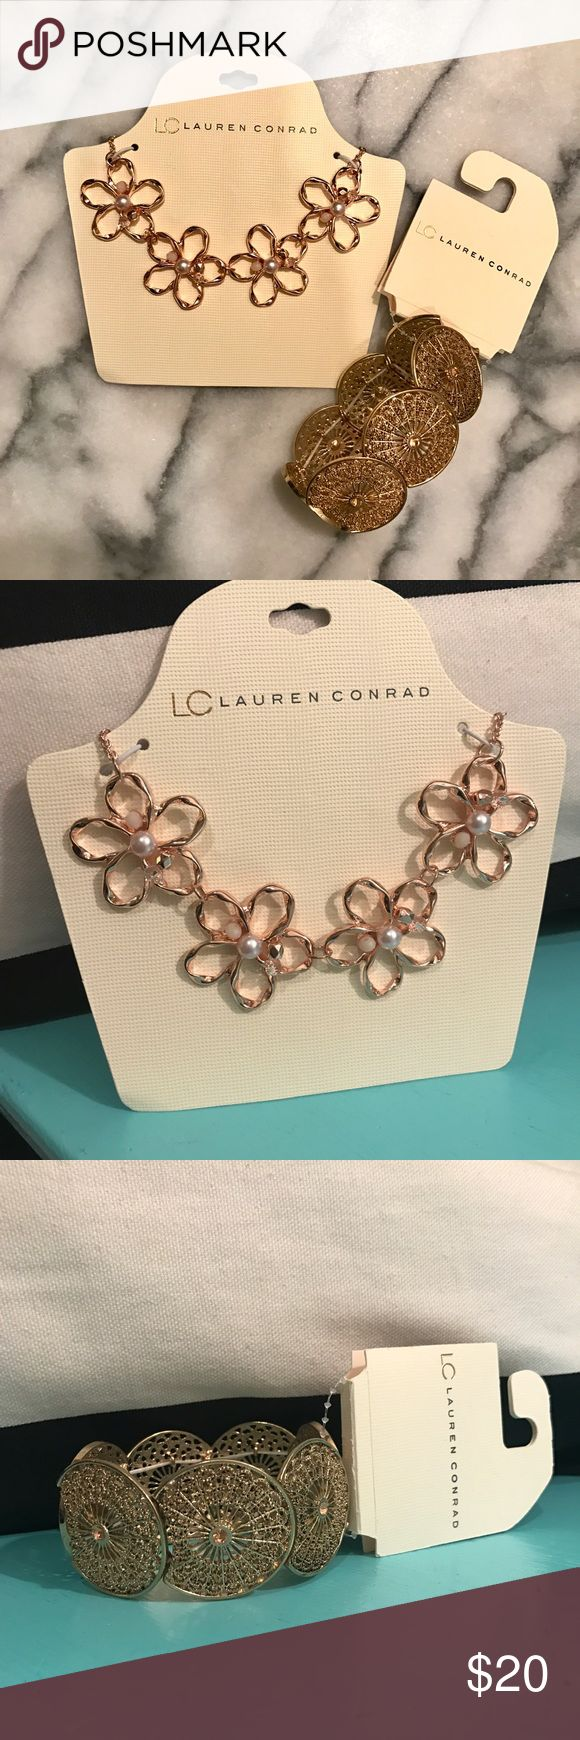 ✨NEW✨ LC Lauren Conrad Jewelry Necklace Bracelet Set of two NEW, unopened pieces of jewelry still in their packaging. LC Lauren Conrad for Kohl's rose gold flower necklace with pearls and gold boho stretch bracelet. LC Lauren Conrad Jewelry